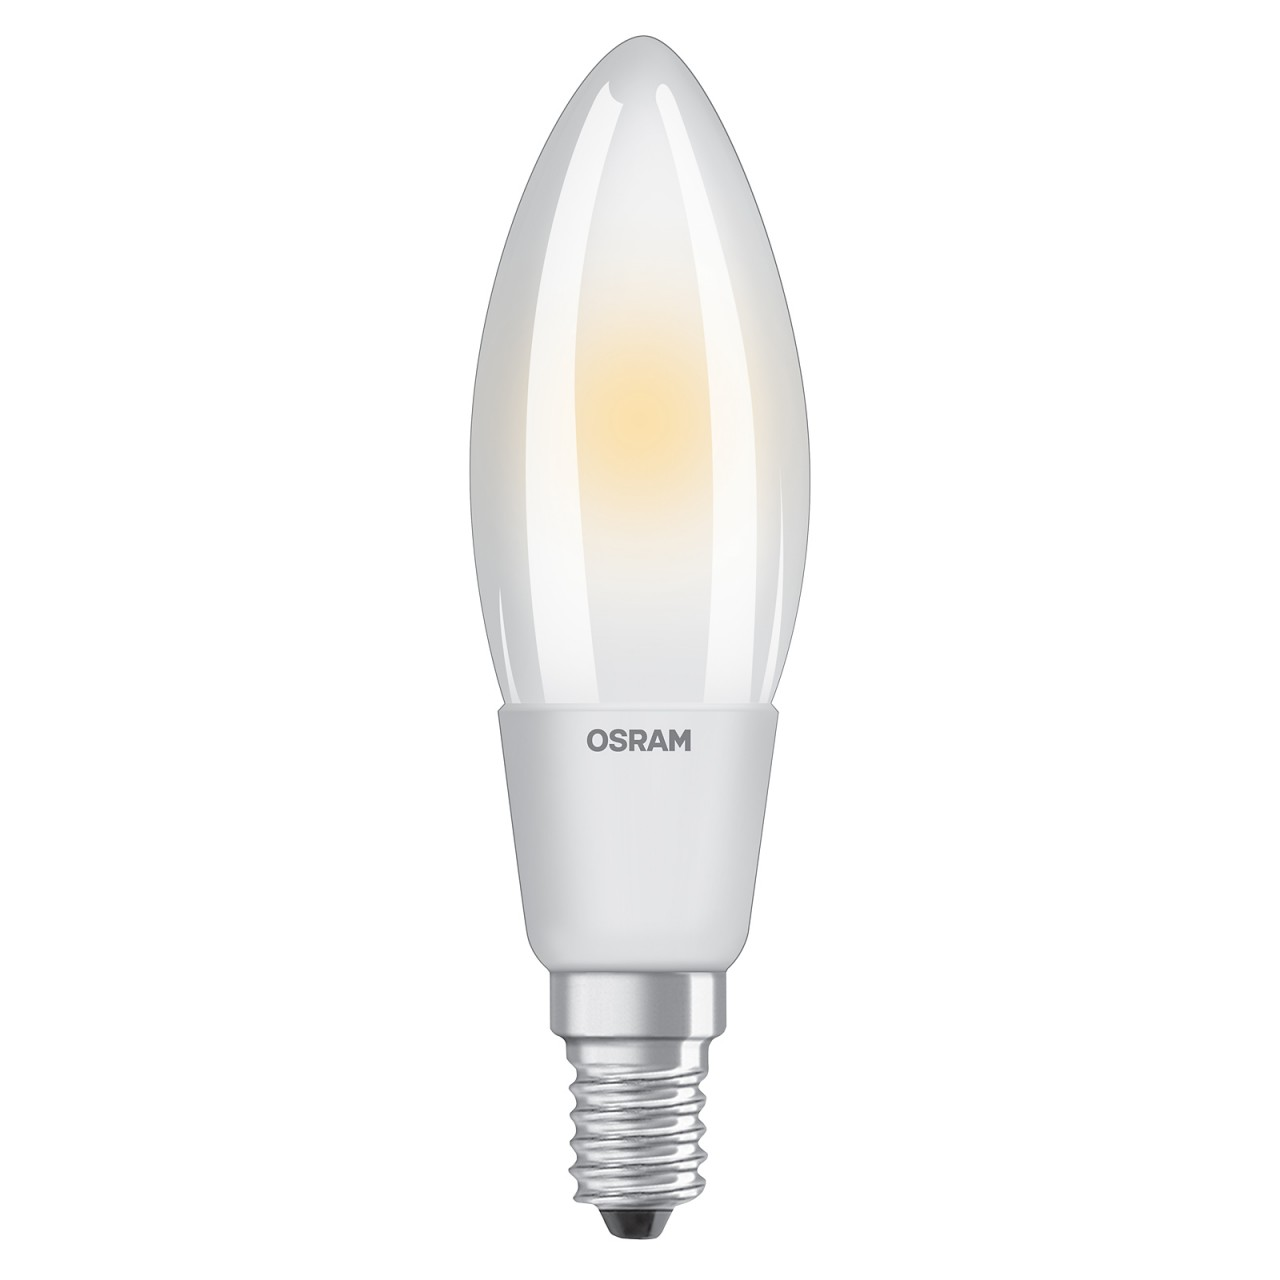 Osram retrofit led classic b 40 e14 5w wie 40 watt 470 lm osram retrofit led classic b 40 e14 5w wie 40 watt 470 lm warmwei dimmbar led parisarafo Image collections